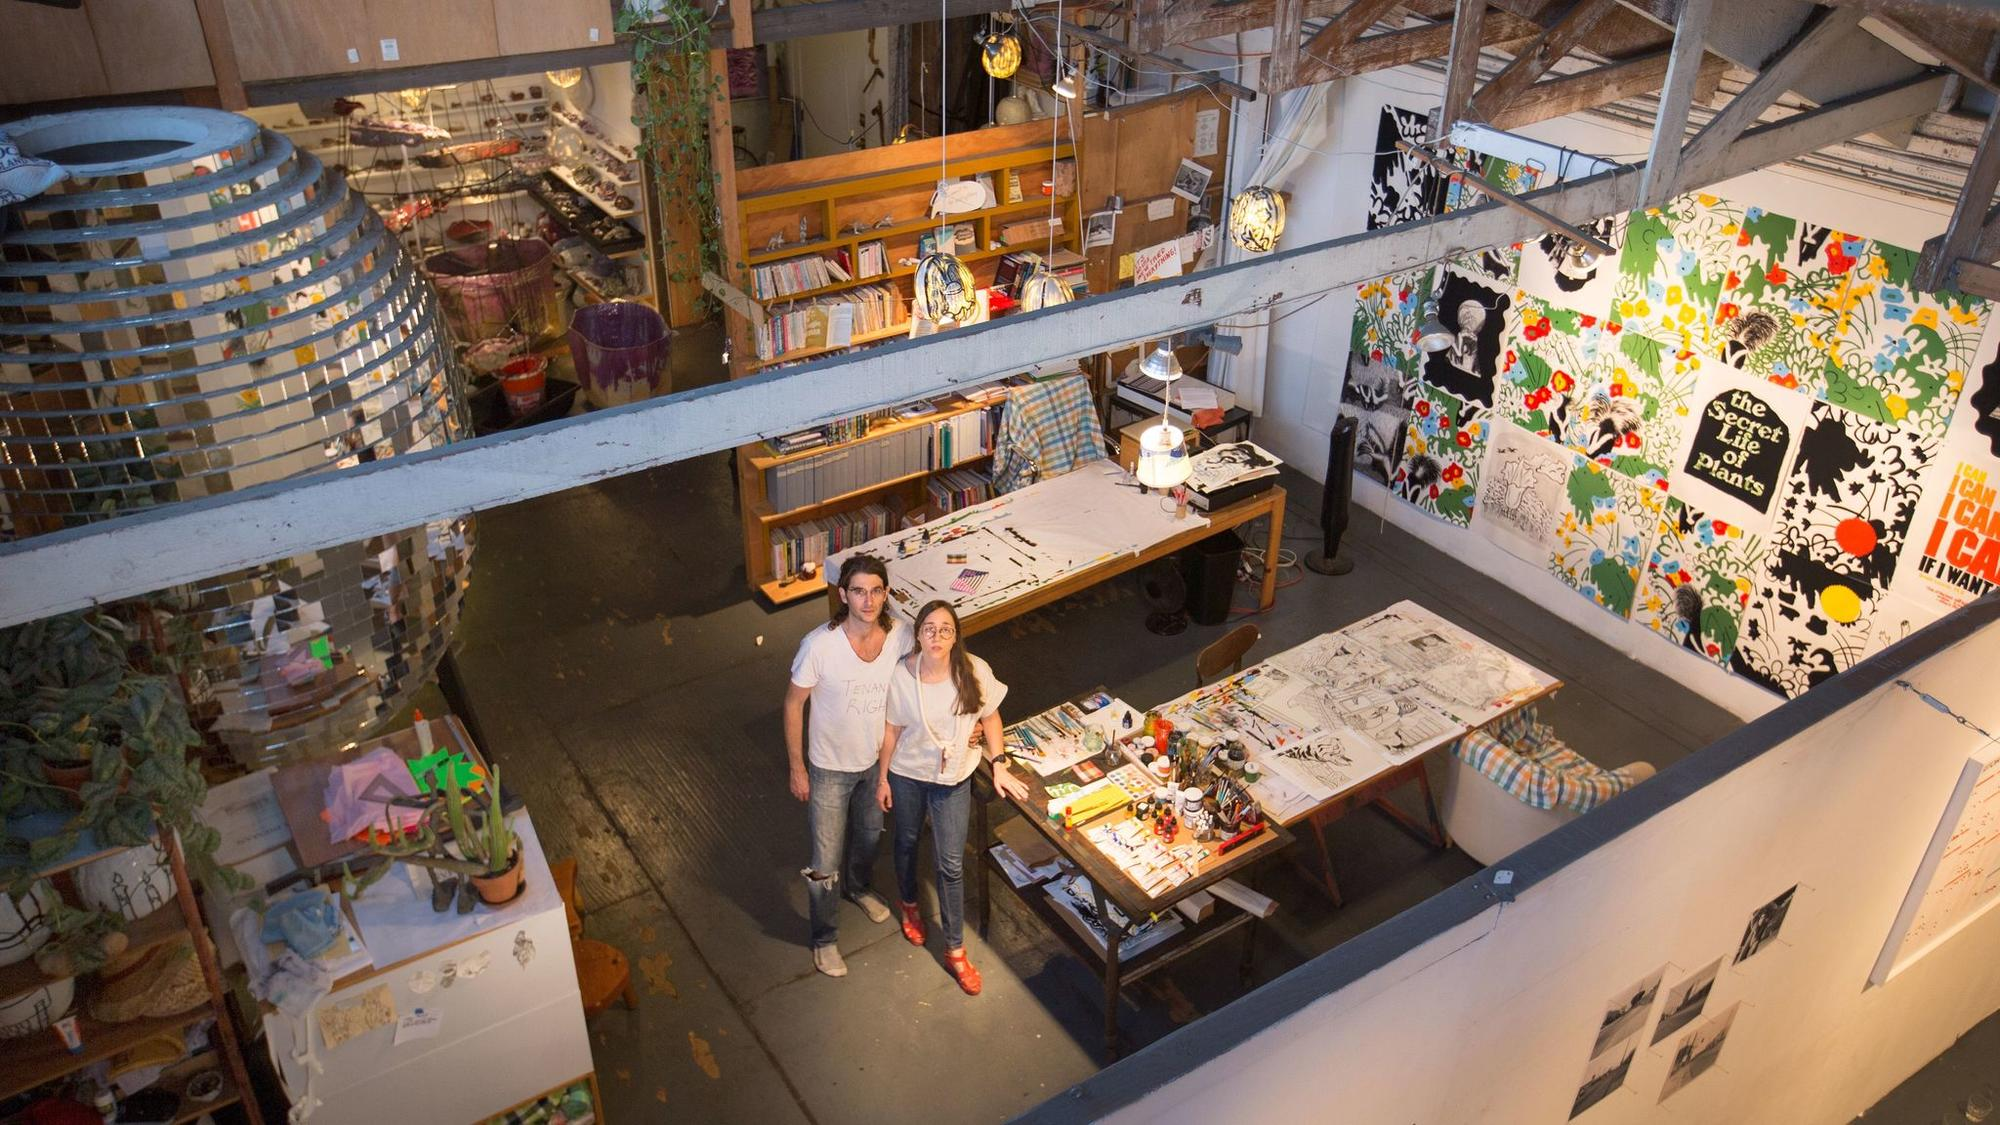 Artists Michael Parker and Alyse Emdur at their Artists' Loft Museum, a show in their studio loft that brings together the work of artists who have passed through their space.